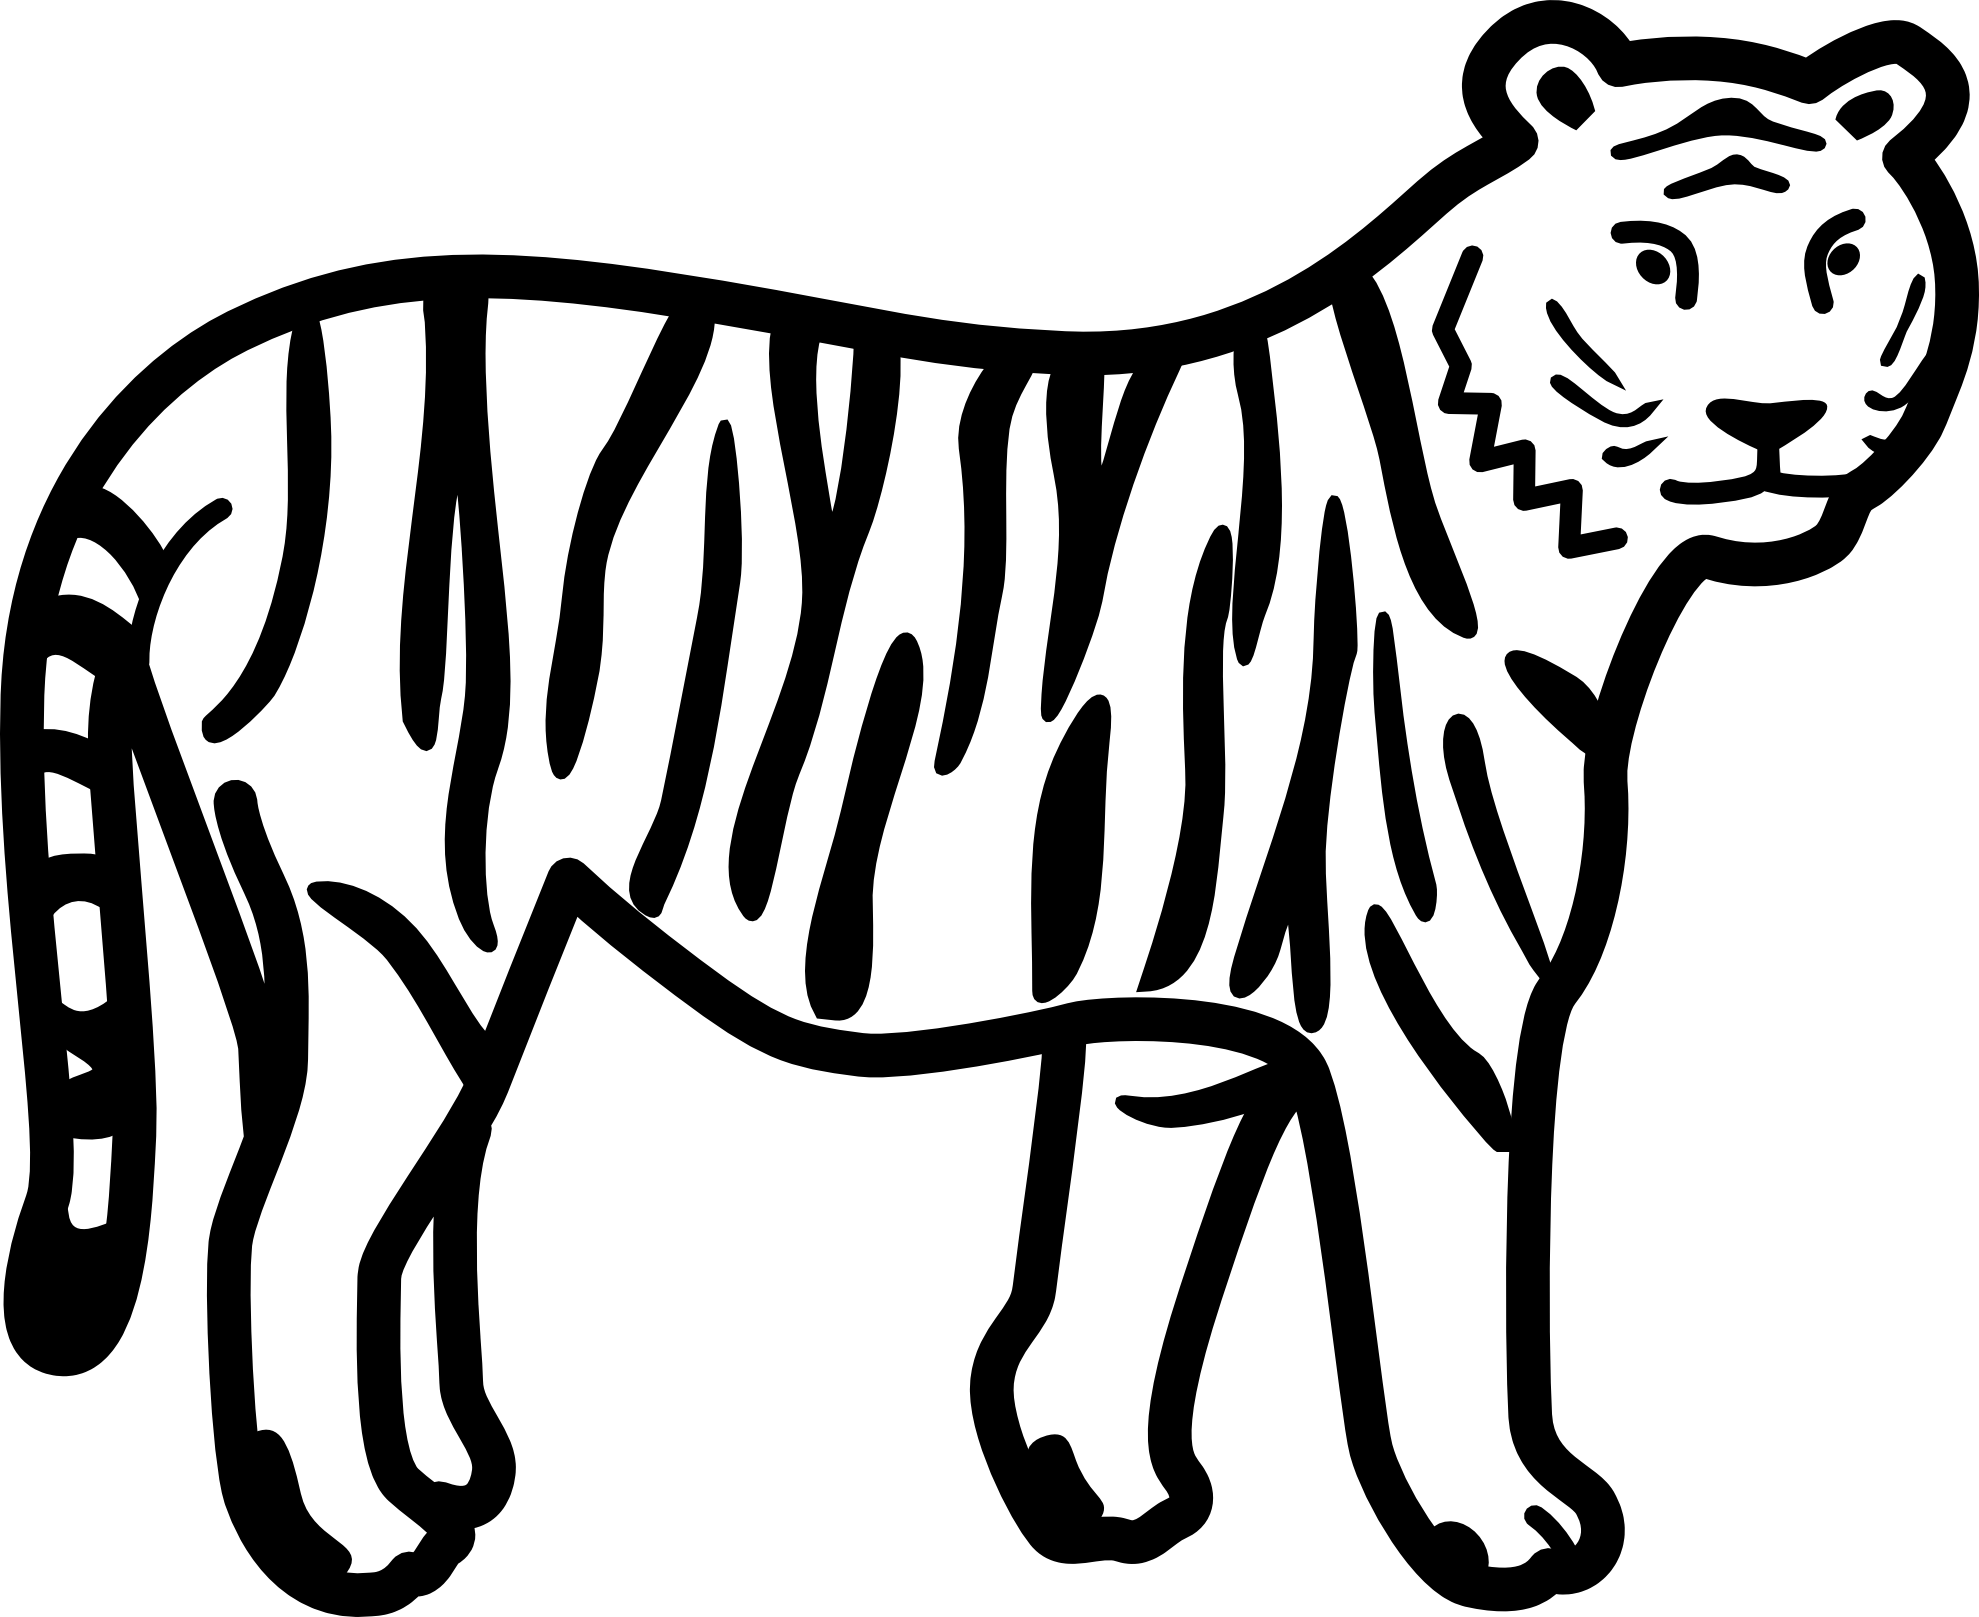 Tiger Coloring Pages For Kids And Adults Submit